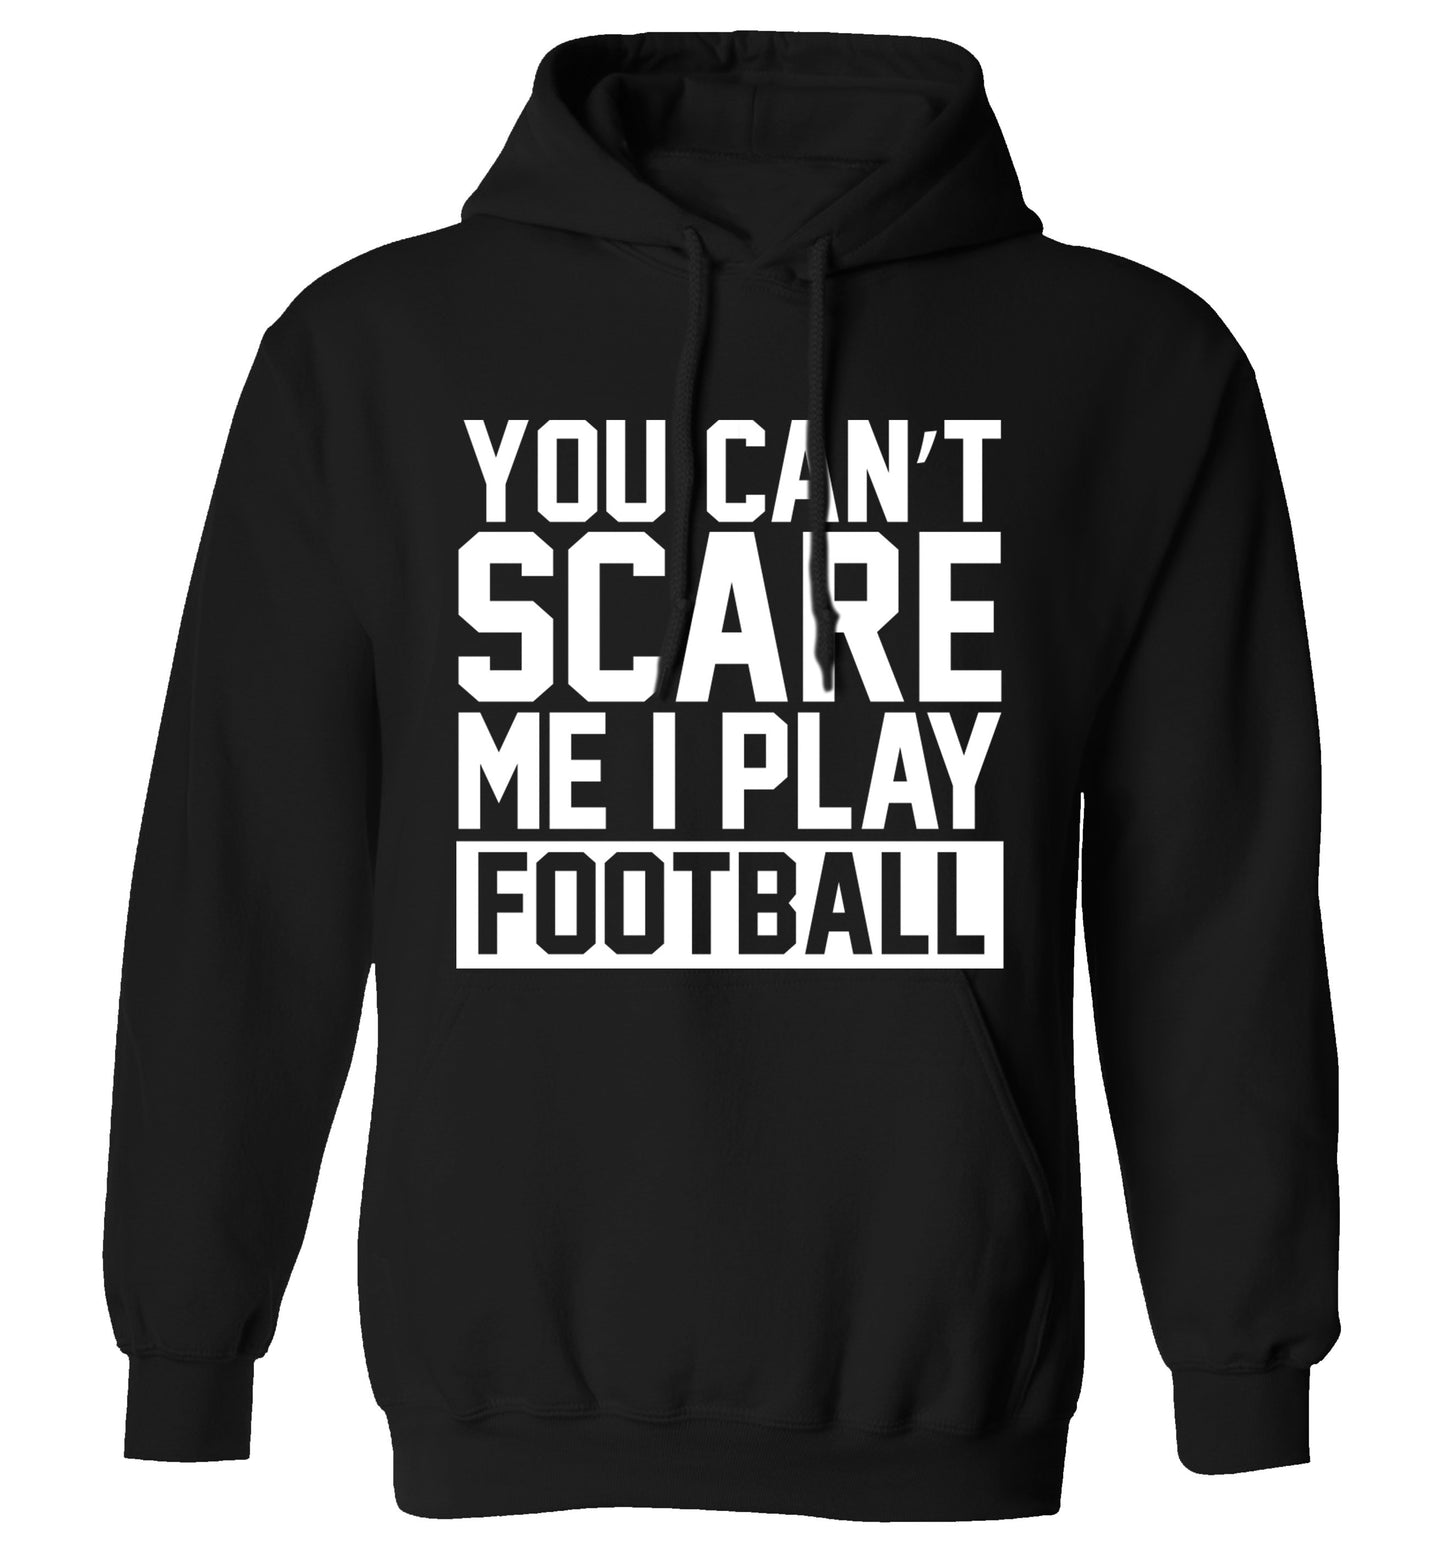 You can't scare me I play football adults unisex black hoodie 2XL